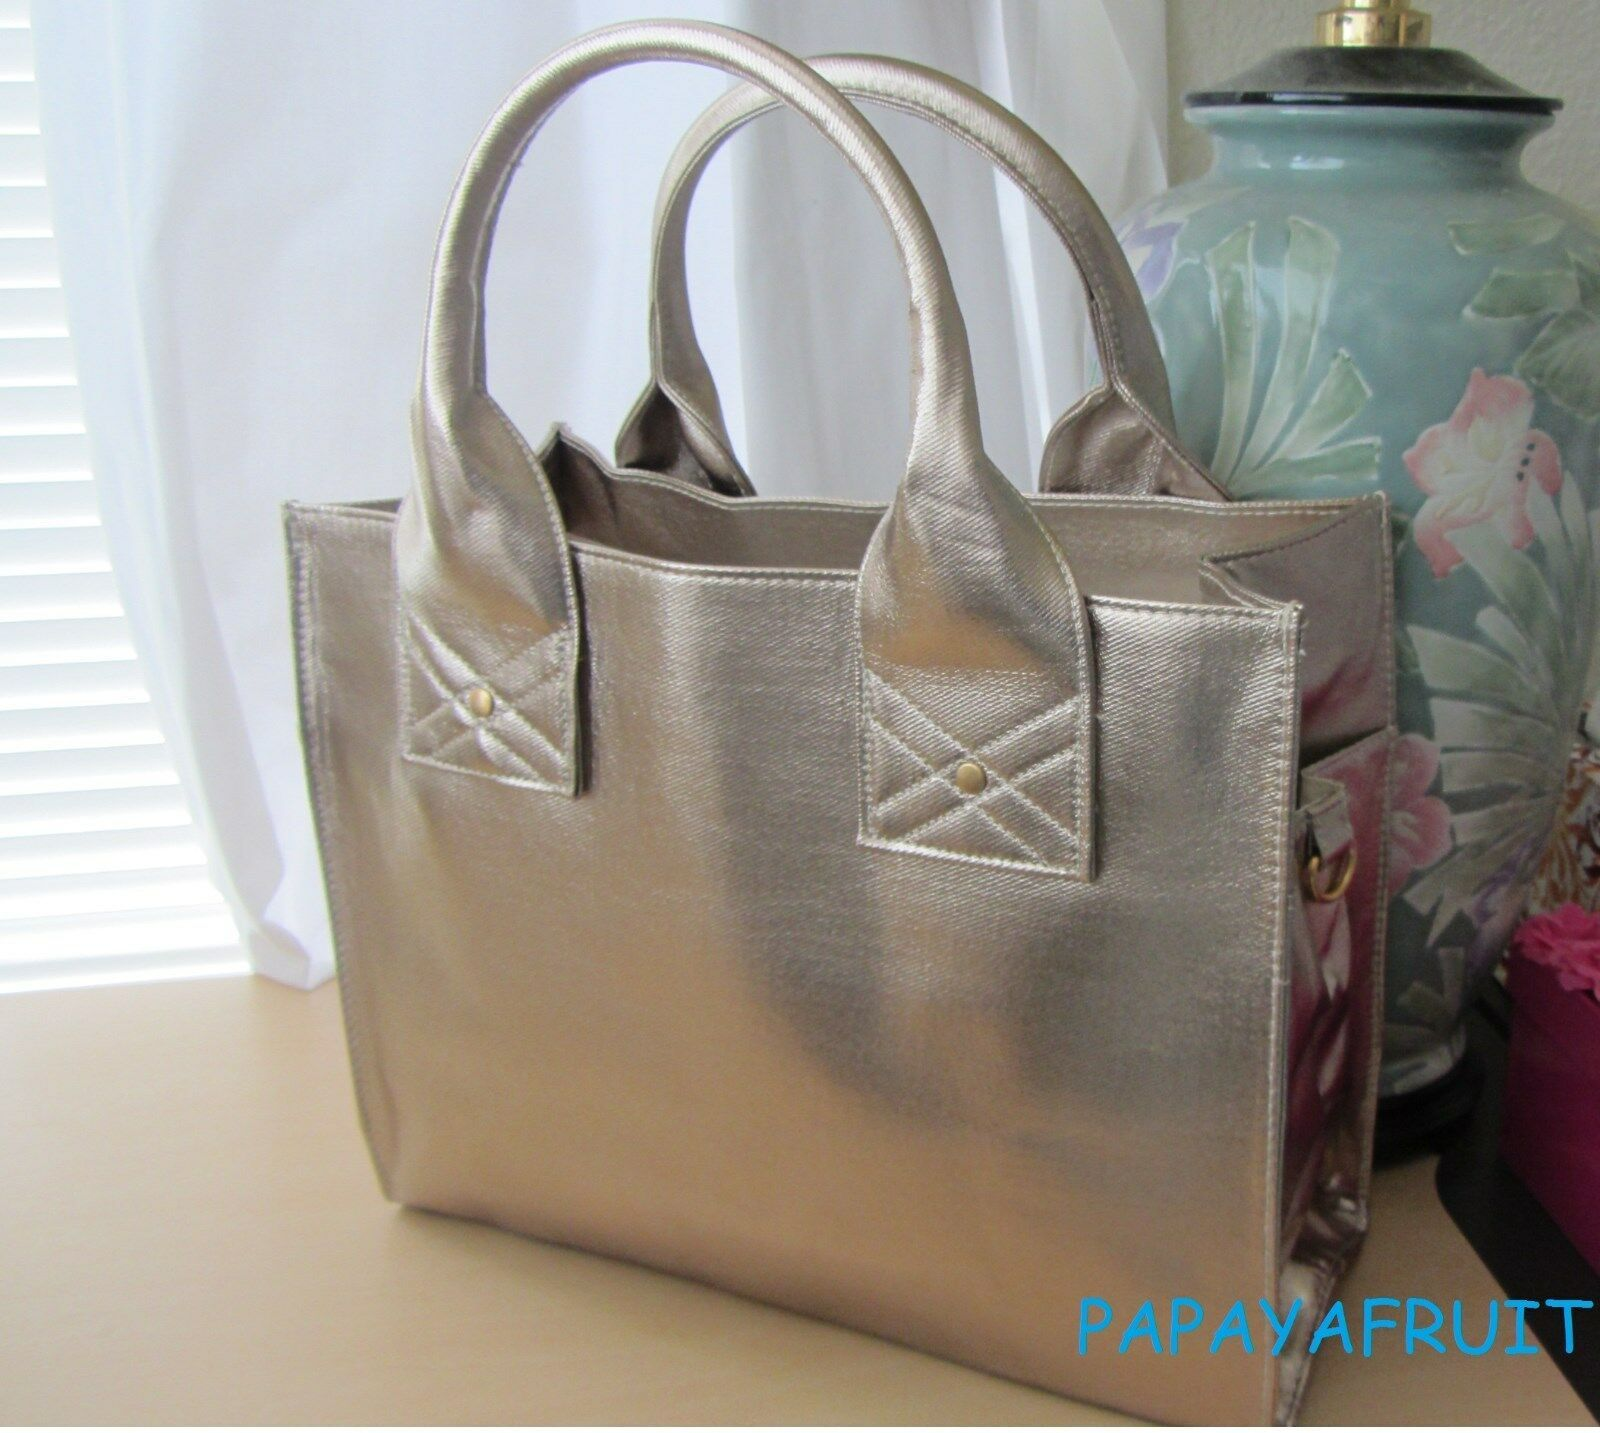 Primary image for Lancome Champagne Gold Structured Tote Bag w/ side hook rings for shoulder strap